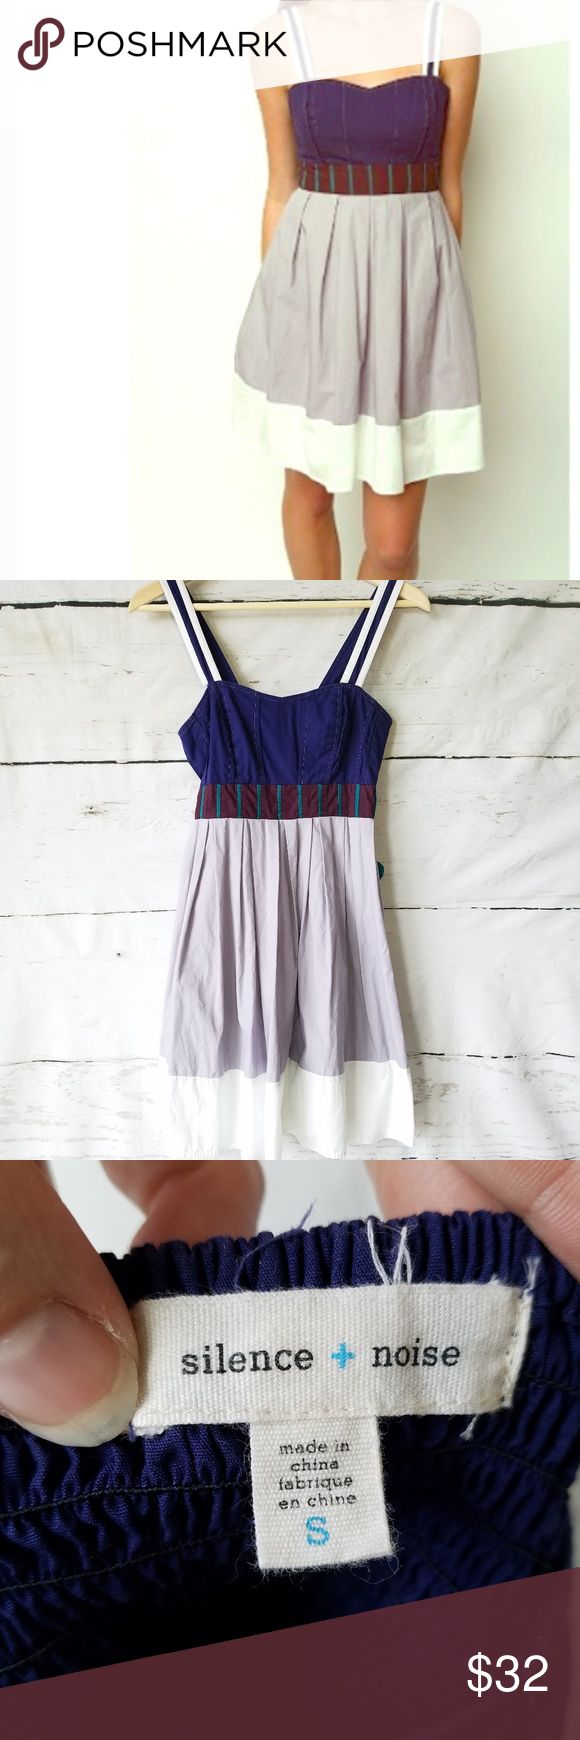 """Silence & Noise Colorblock Navajo Dress Urban Outfitters Silence & Noise colorblock Navajo dress. Size SMALL. Gray and white slightly pleated skirt with turquoise tie back. Chest fabric is purple with gold threading and white lined straps.  Side zipper and elastic stretching on upper back for a more snug fit. Approx measurements: 34"""" length from top of strap to bottom hem.  14.5"""" pit to pit without stretching elastic backing. Waist is 12 1/4"""" This dress is so cute!! Perfect spring or summer…"""